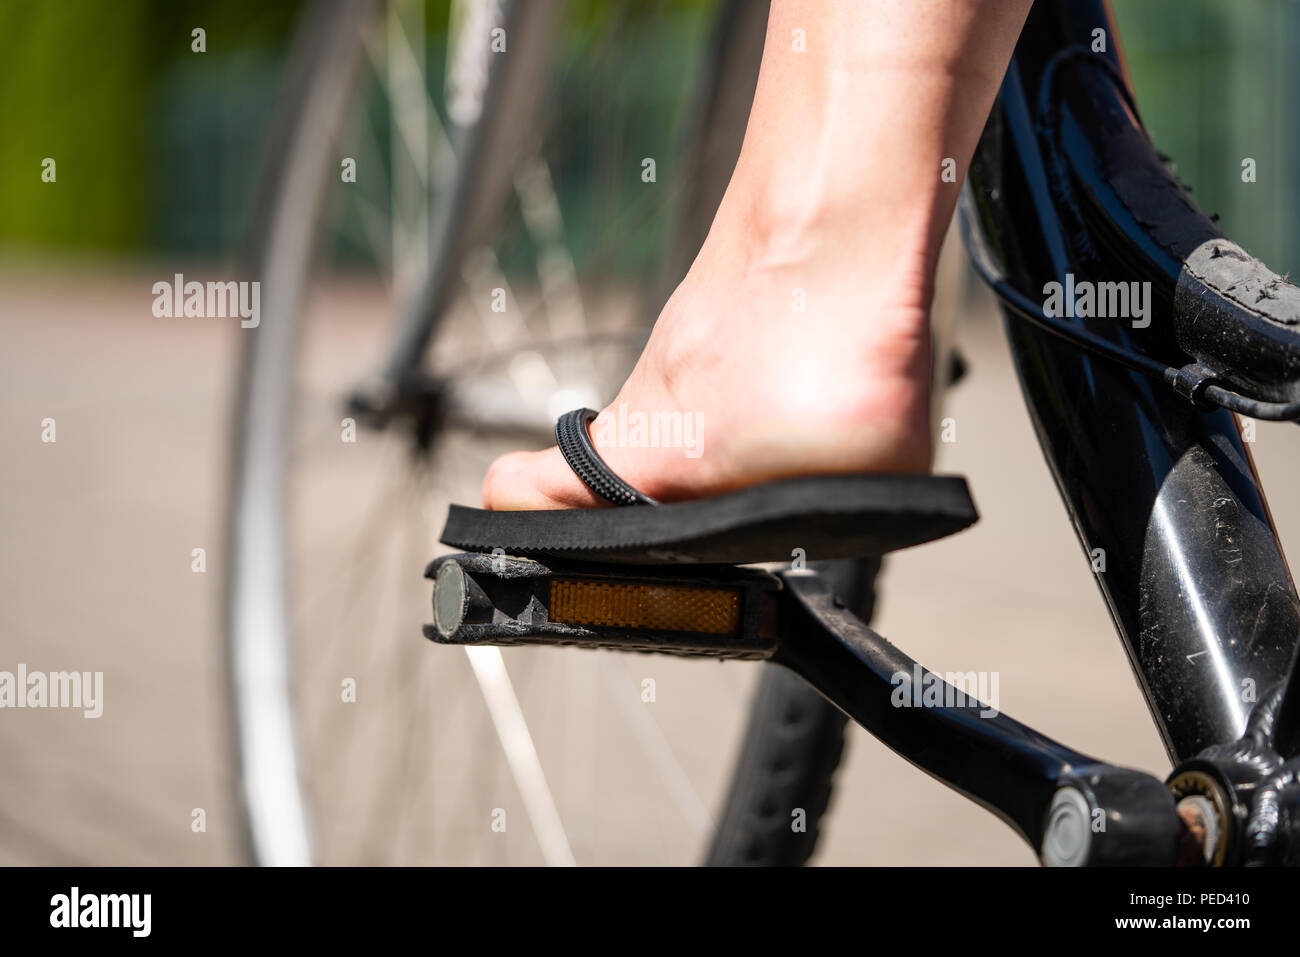 c88a98bfefdb A girl is riding her bike with flip flops Stock Photo  215418140 - Alamy